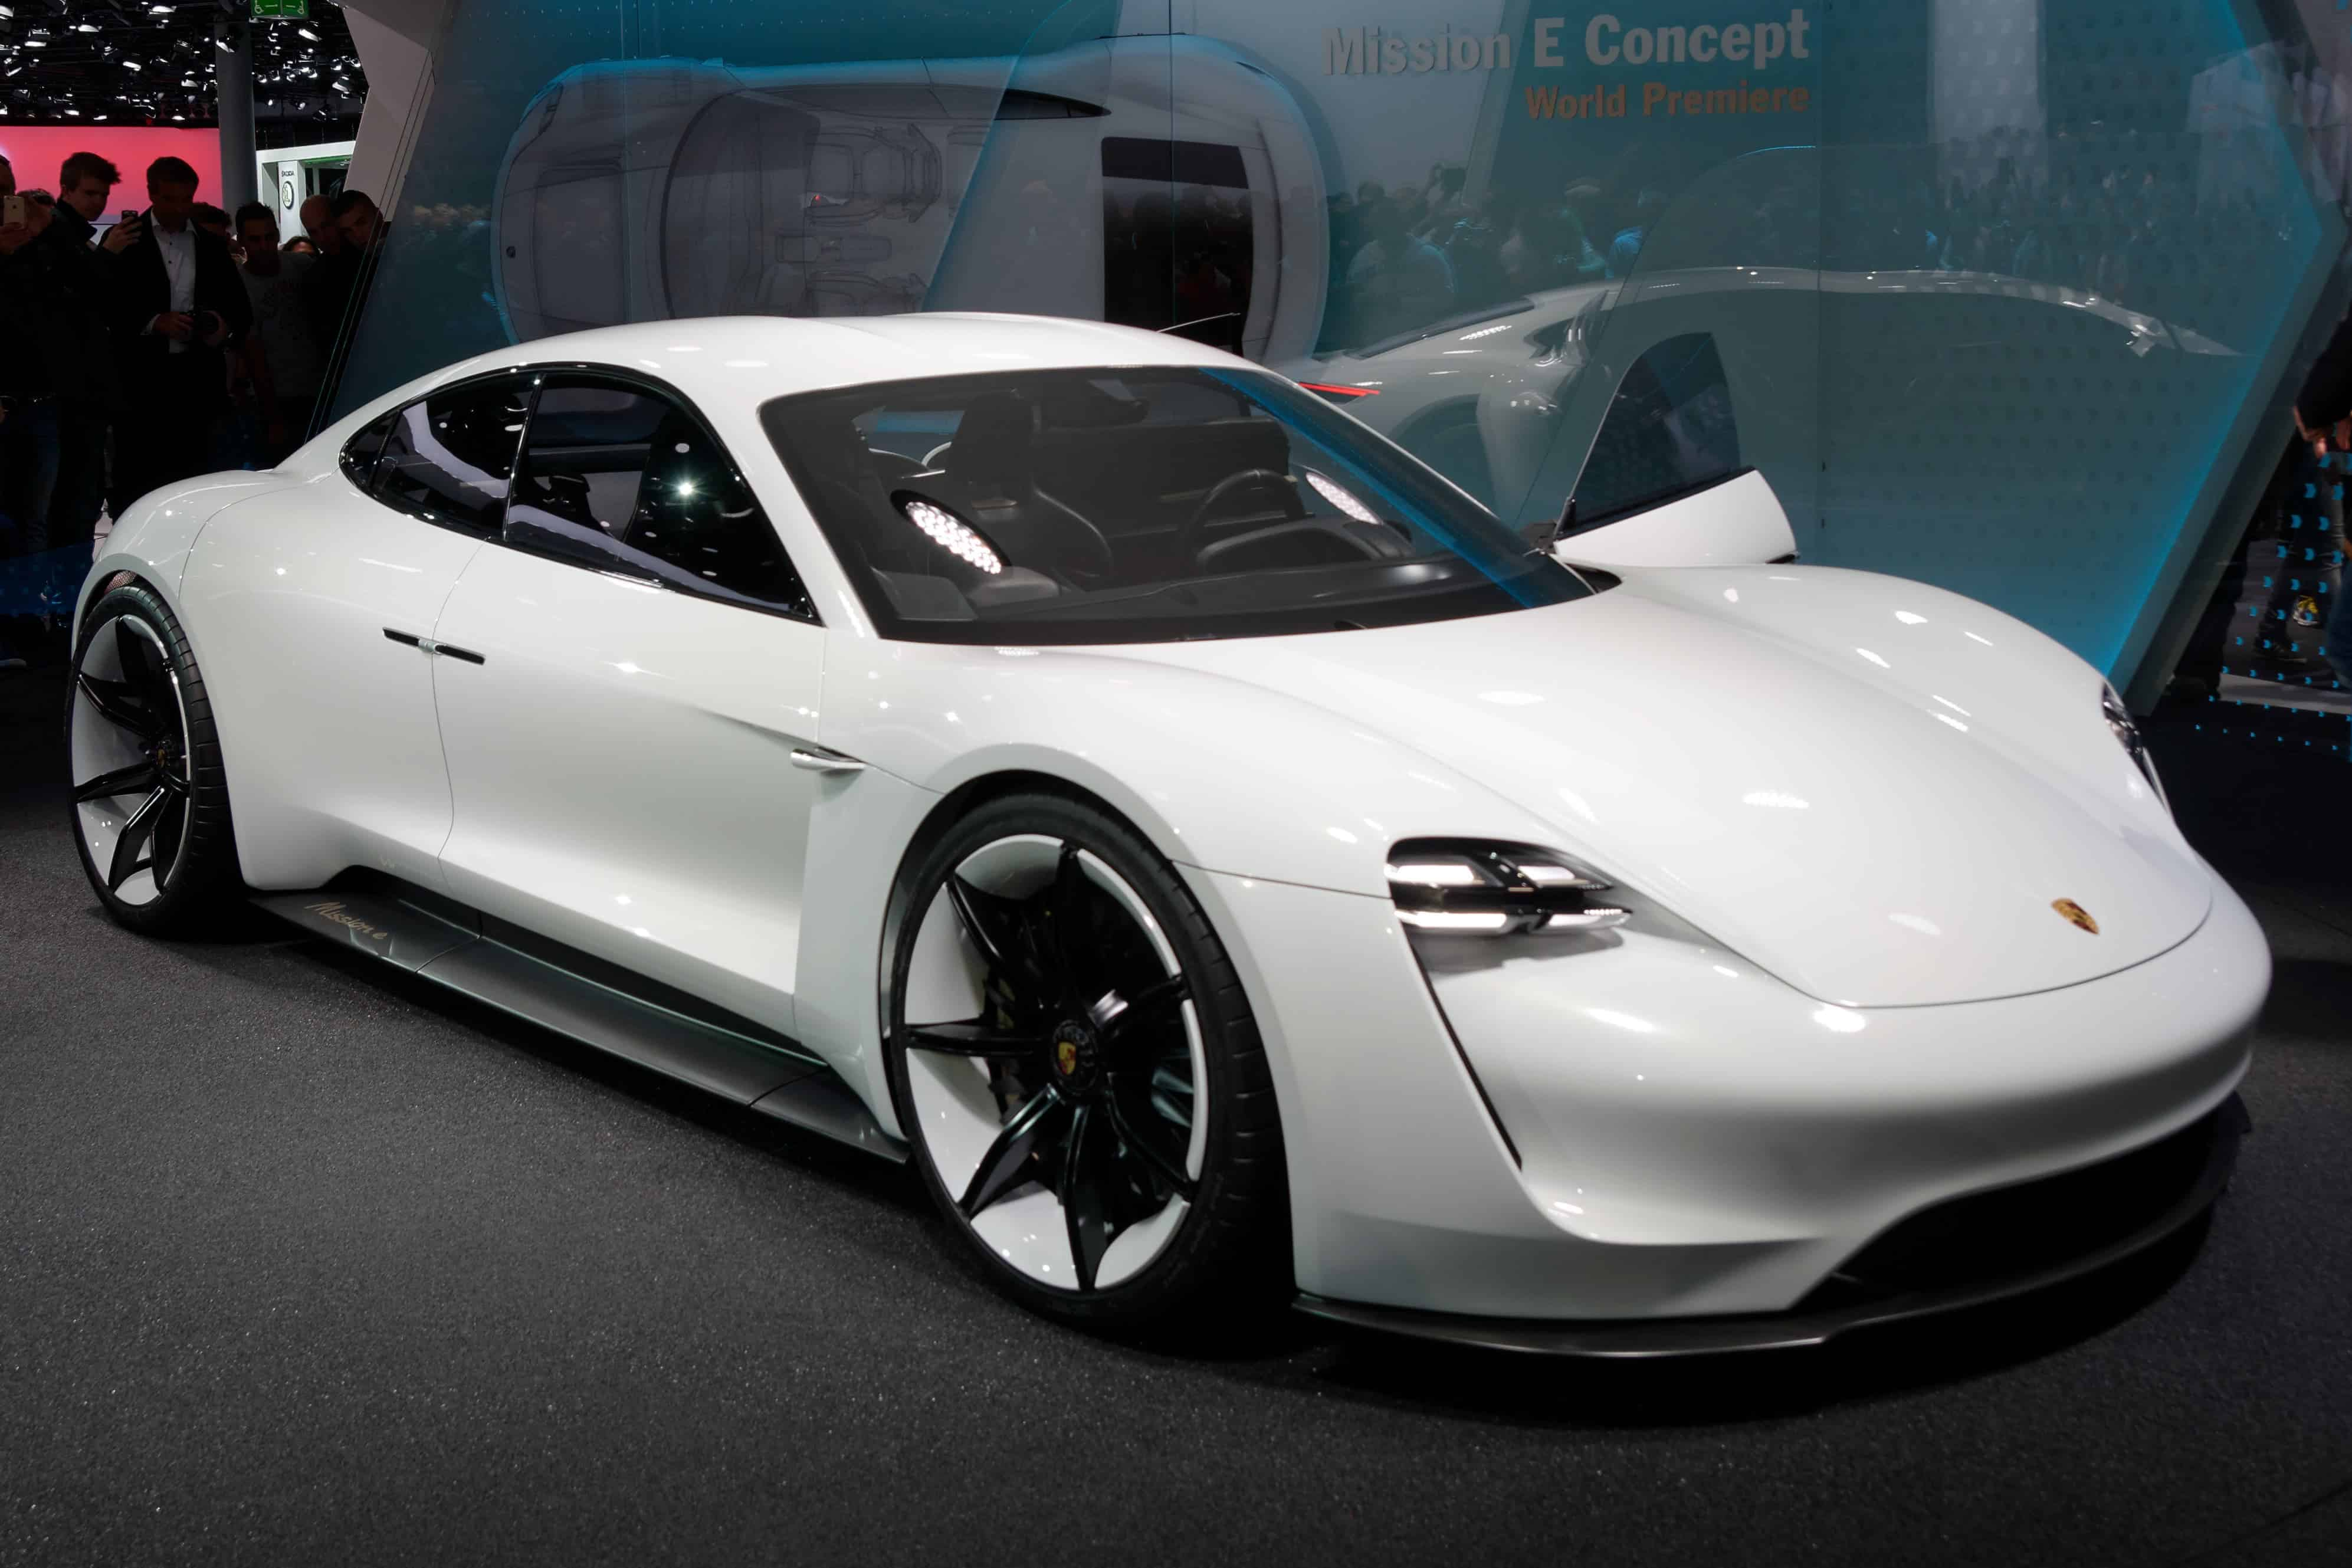 Porsche announced it wants half of its cars to be electric by 2023